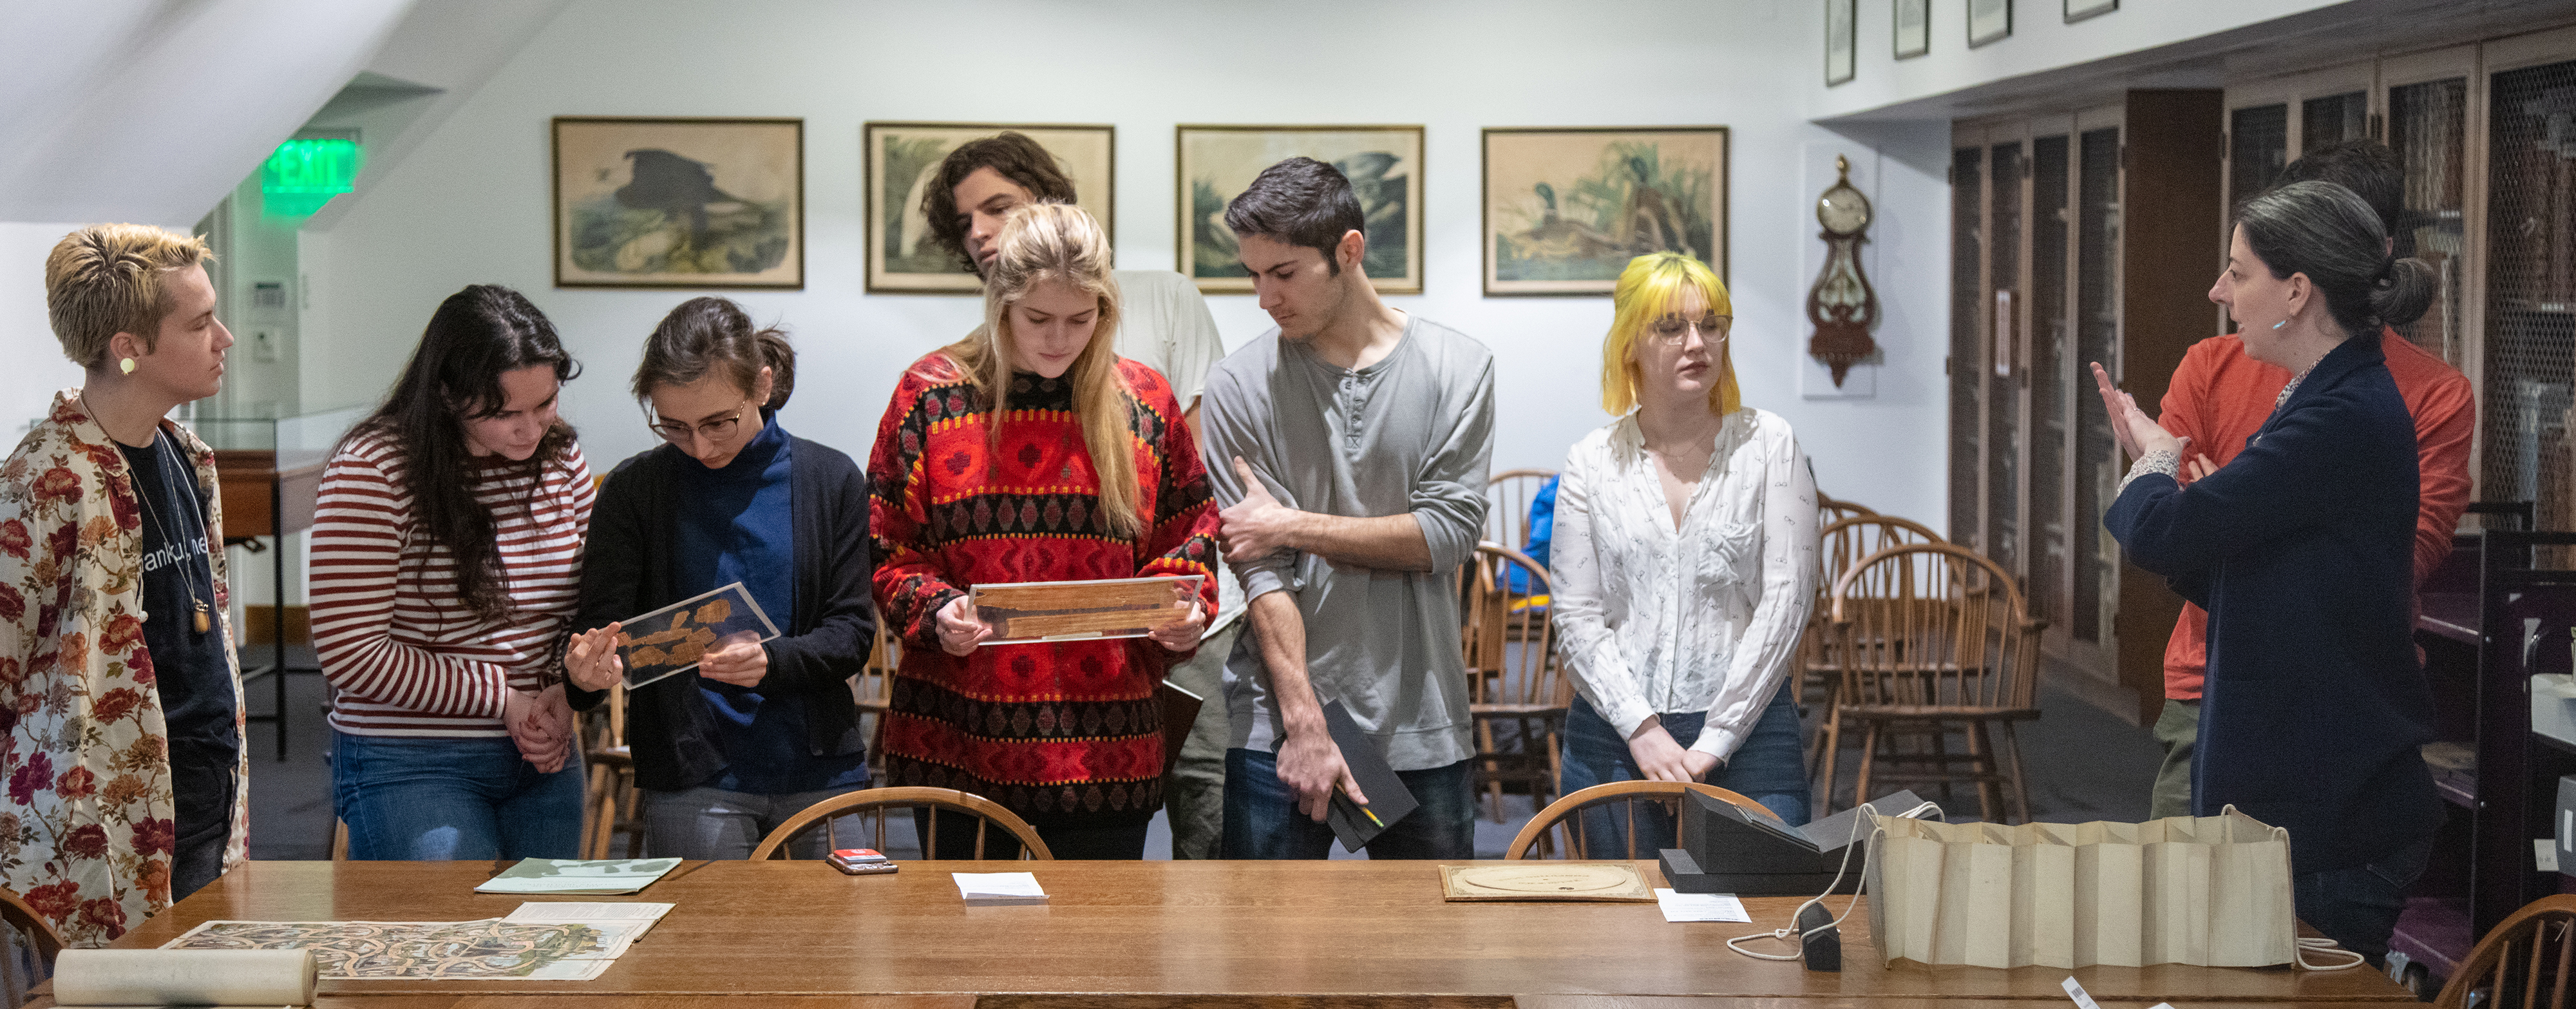 Students in the John Hay Library examine Egyptian papyri and other artifacts.